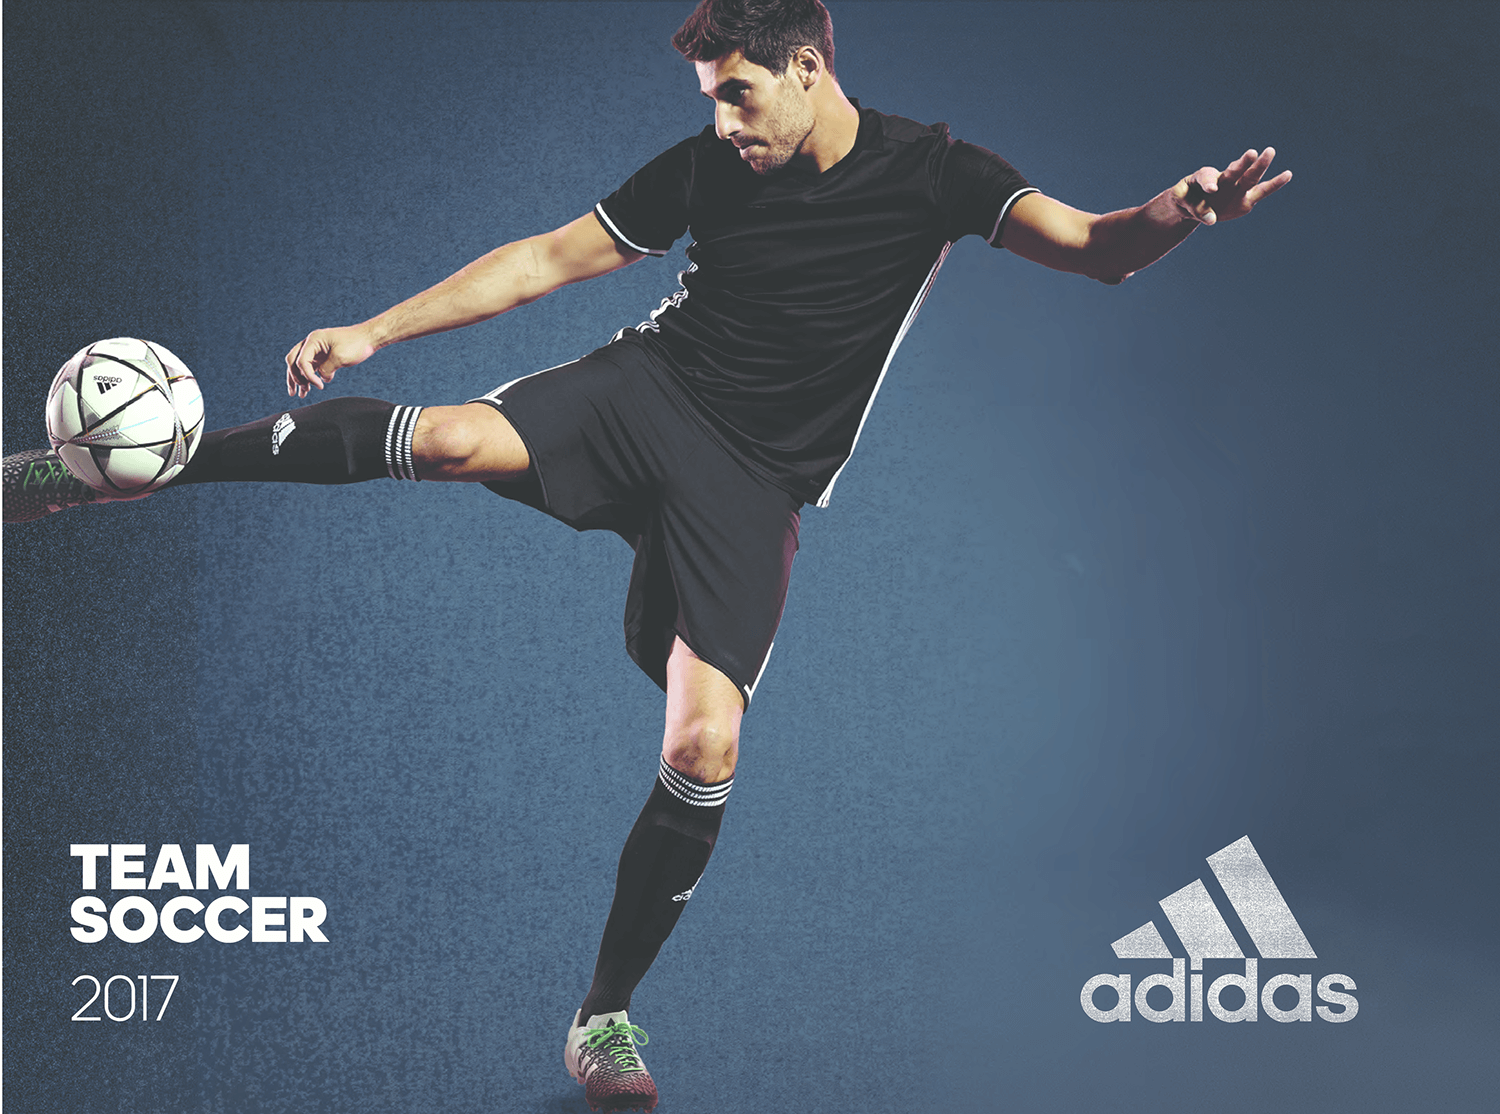 adidas team soccer 2017 catalog